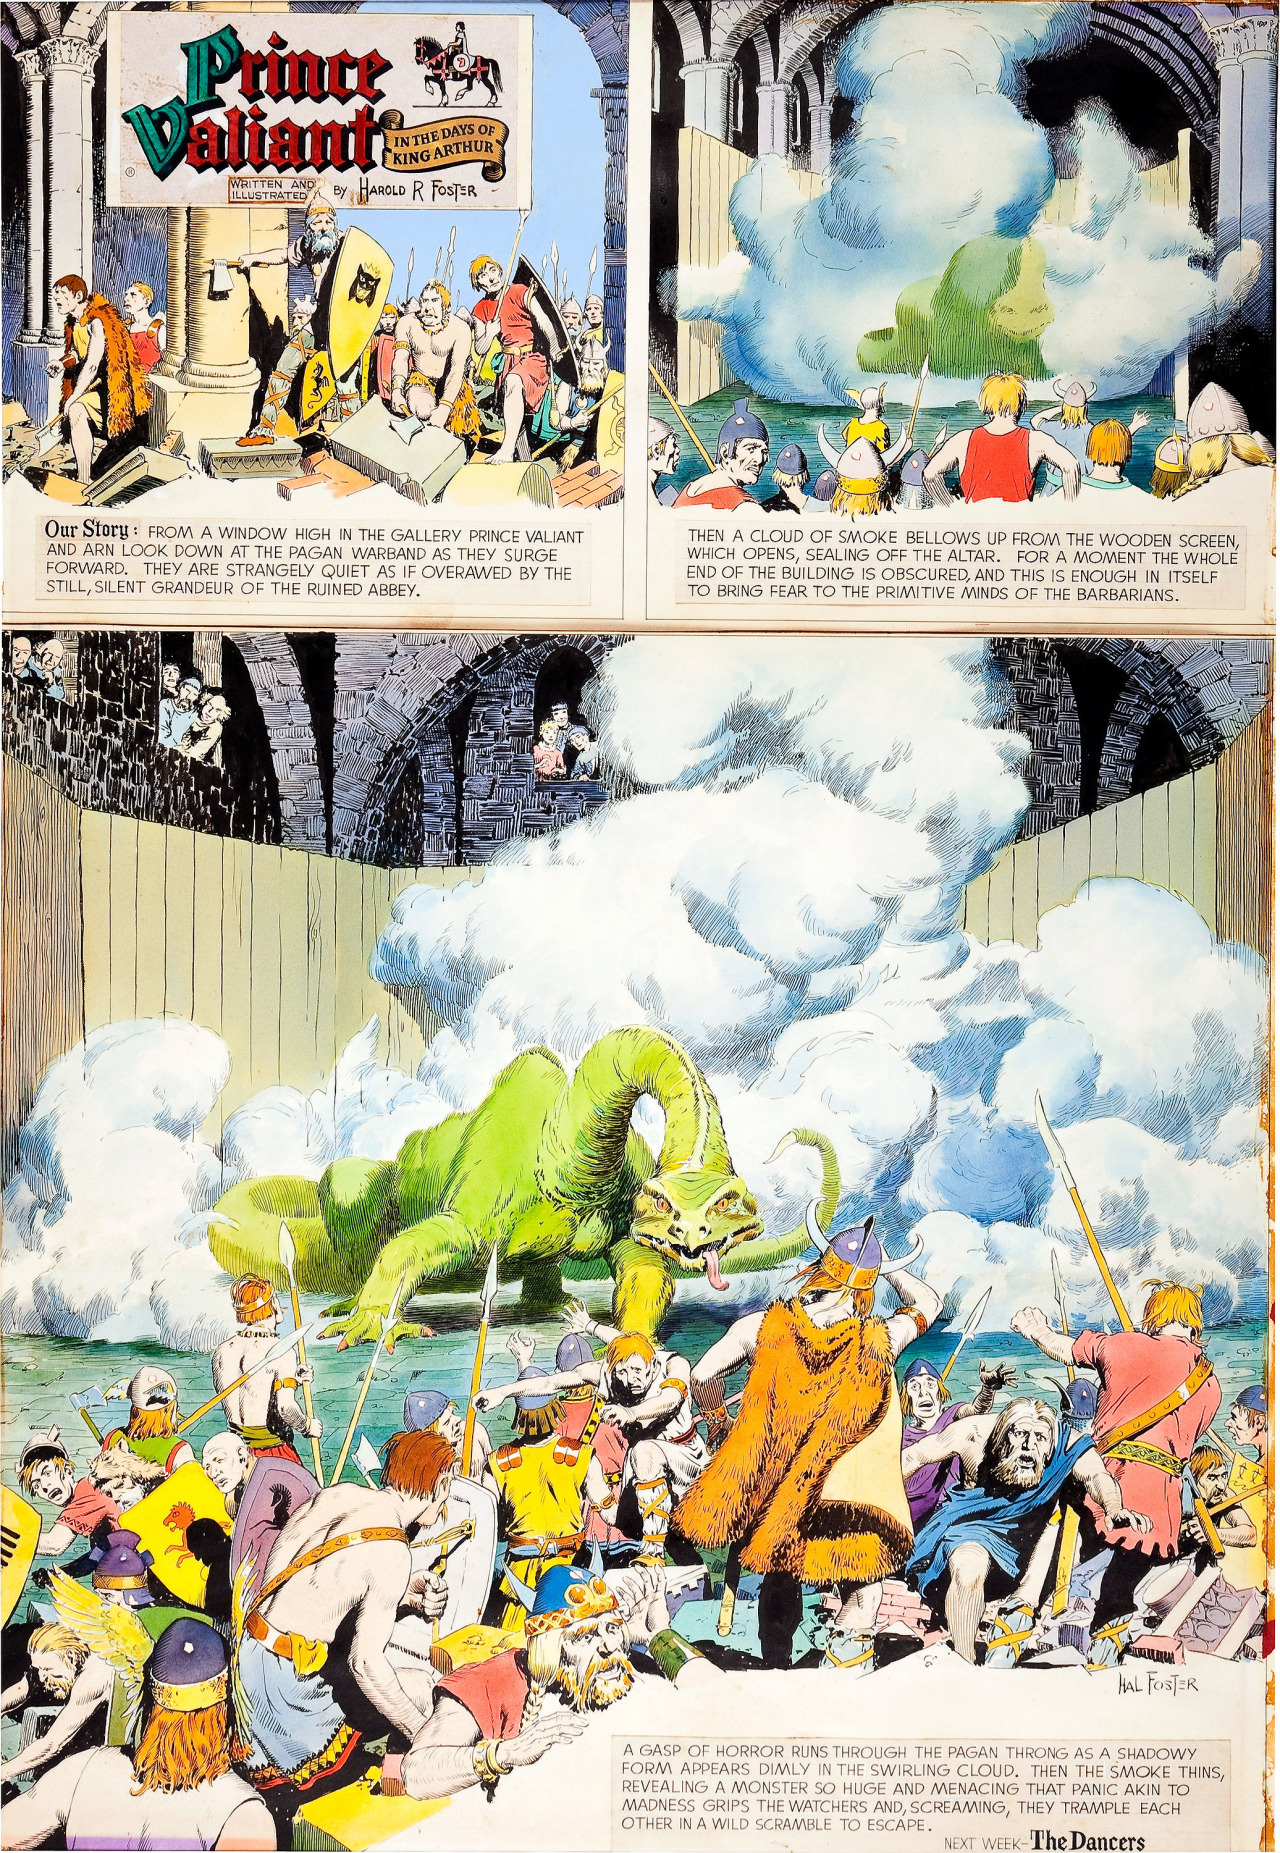 thebristolboard: Original hand-colored Prince Valiant Sunday Strip by Hal Foster, first published by King Features Syndicate, March 25, 1961.